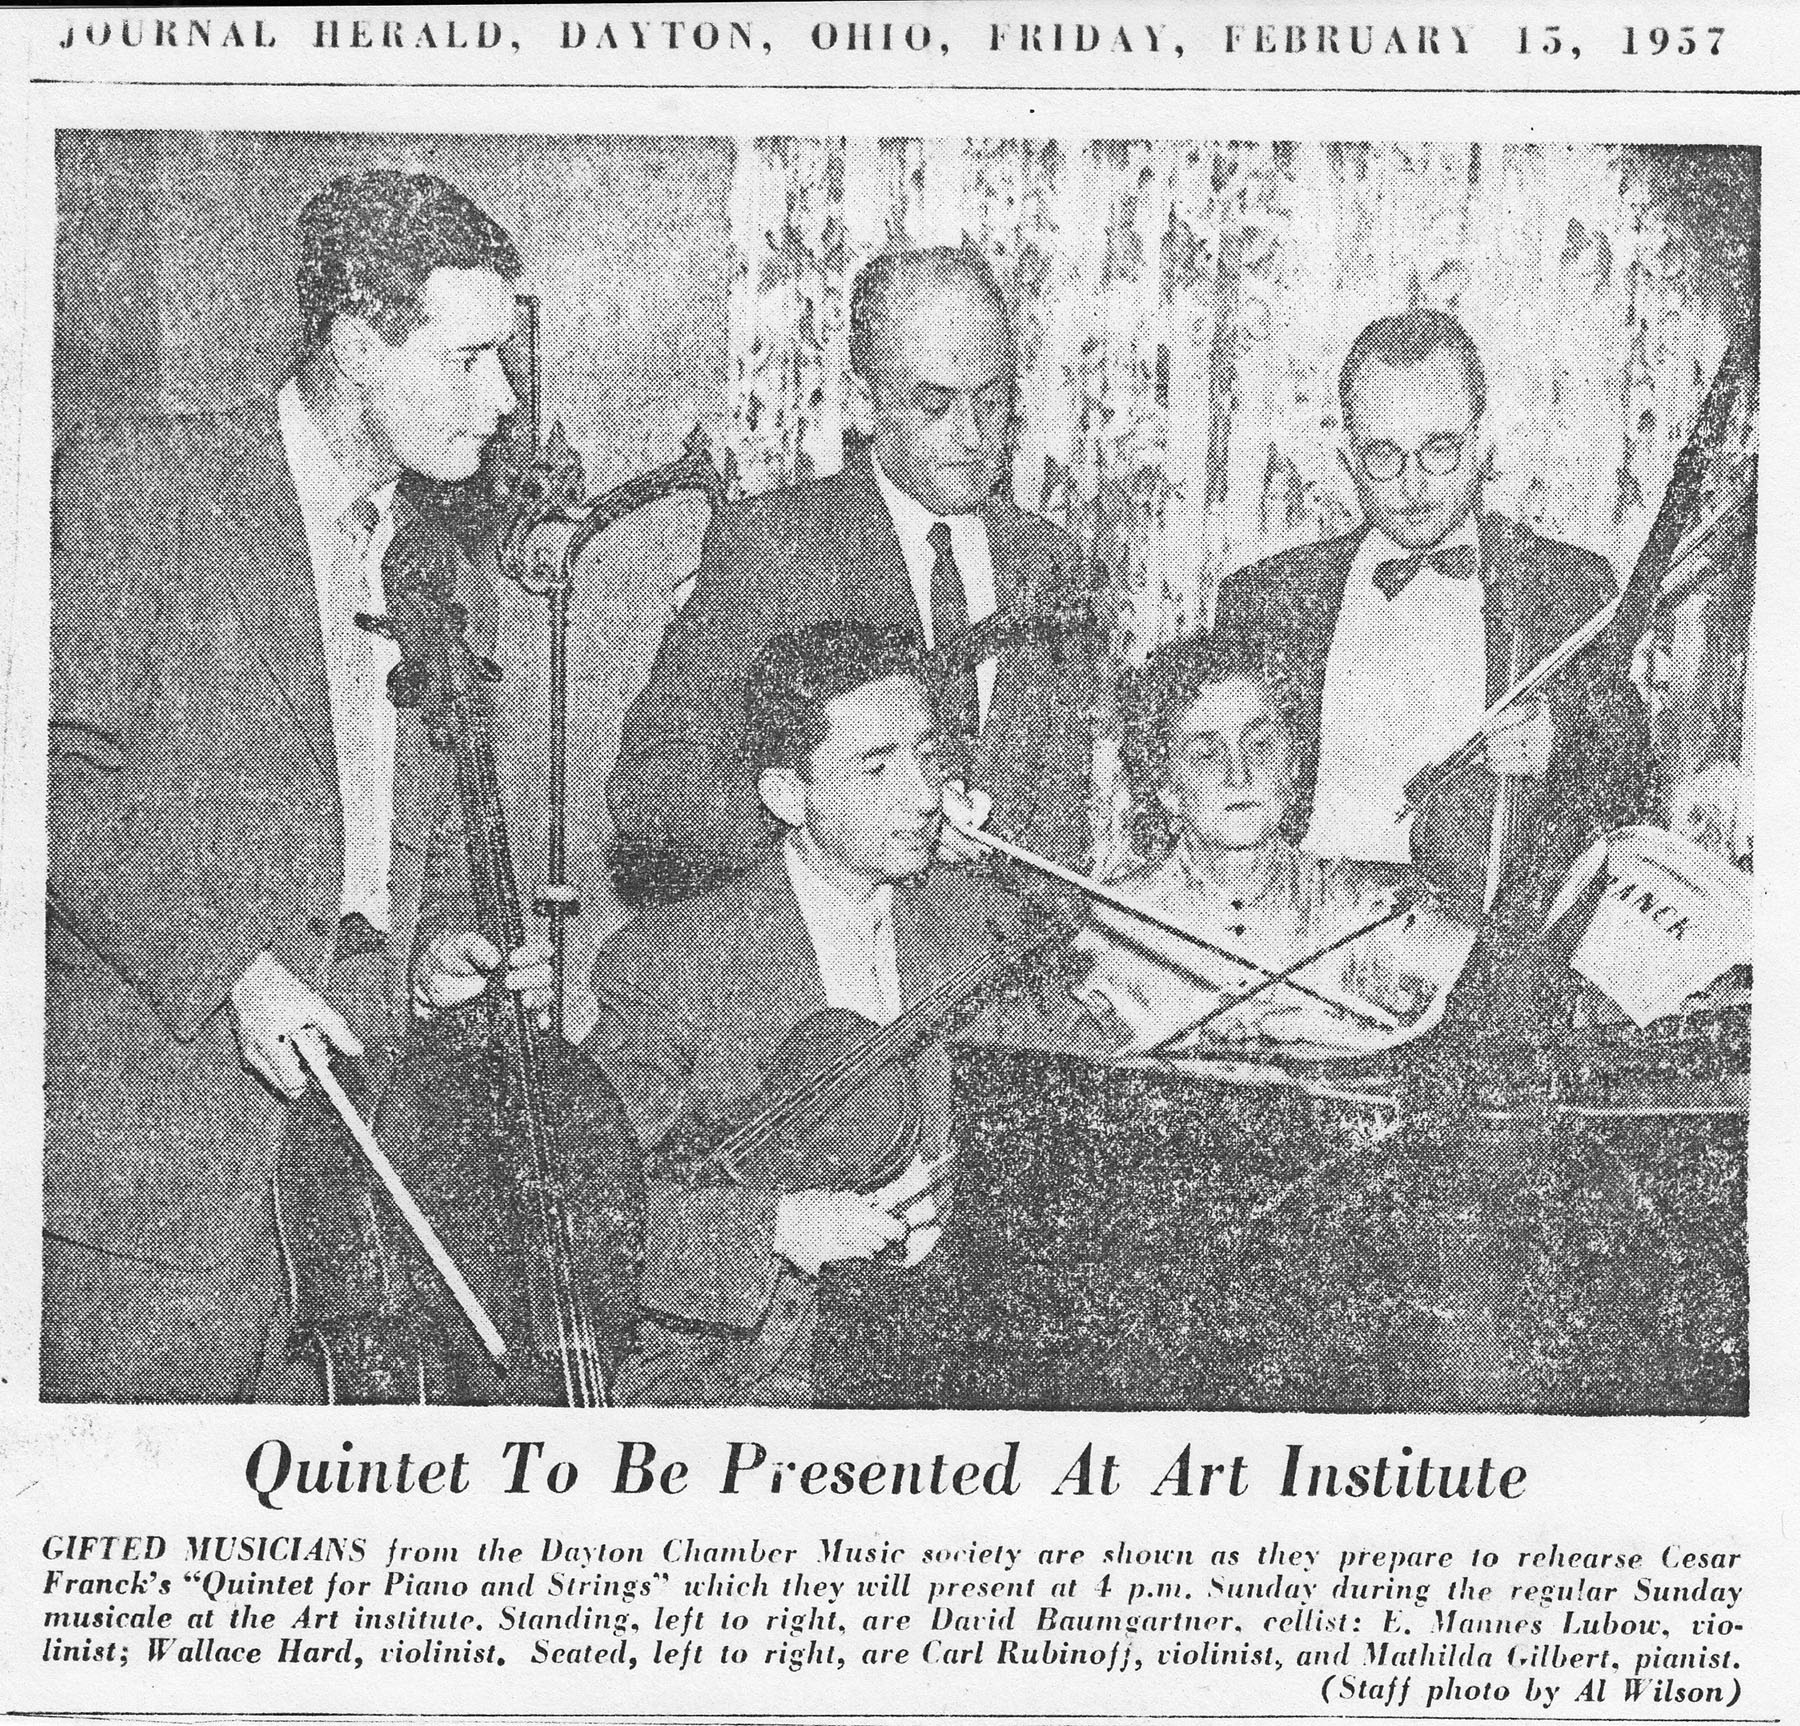 Newspaper article about Dayton Chamber Music Society performance at Art Institute, February 13, 1957. (MS-531, Box 3, File 5)